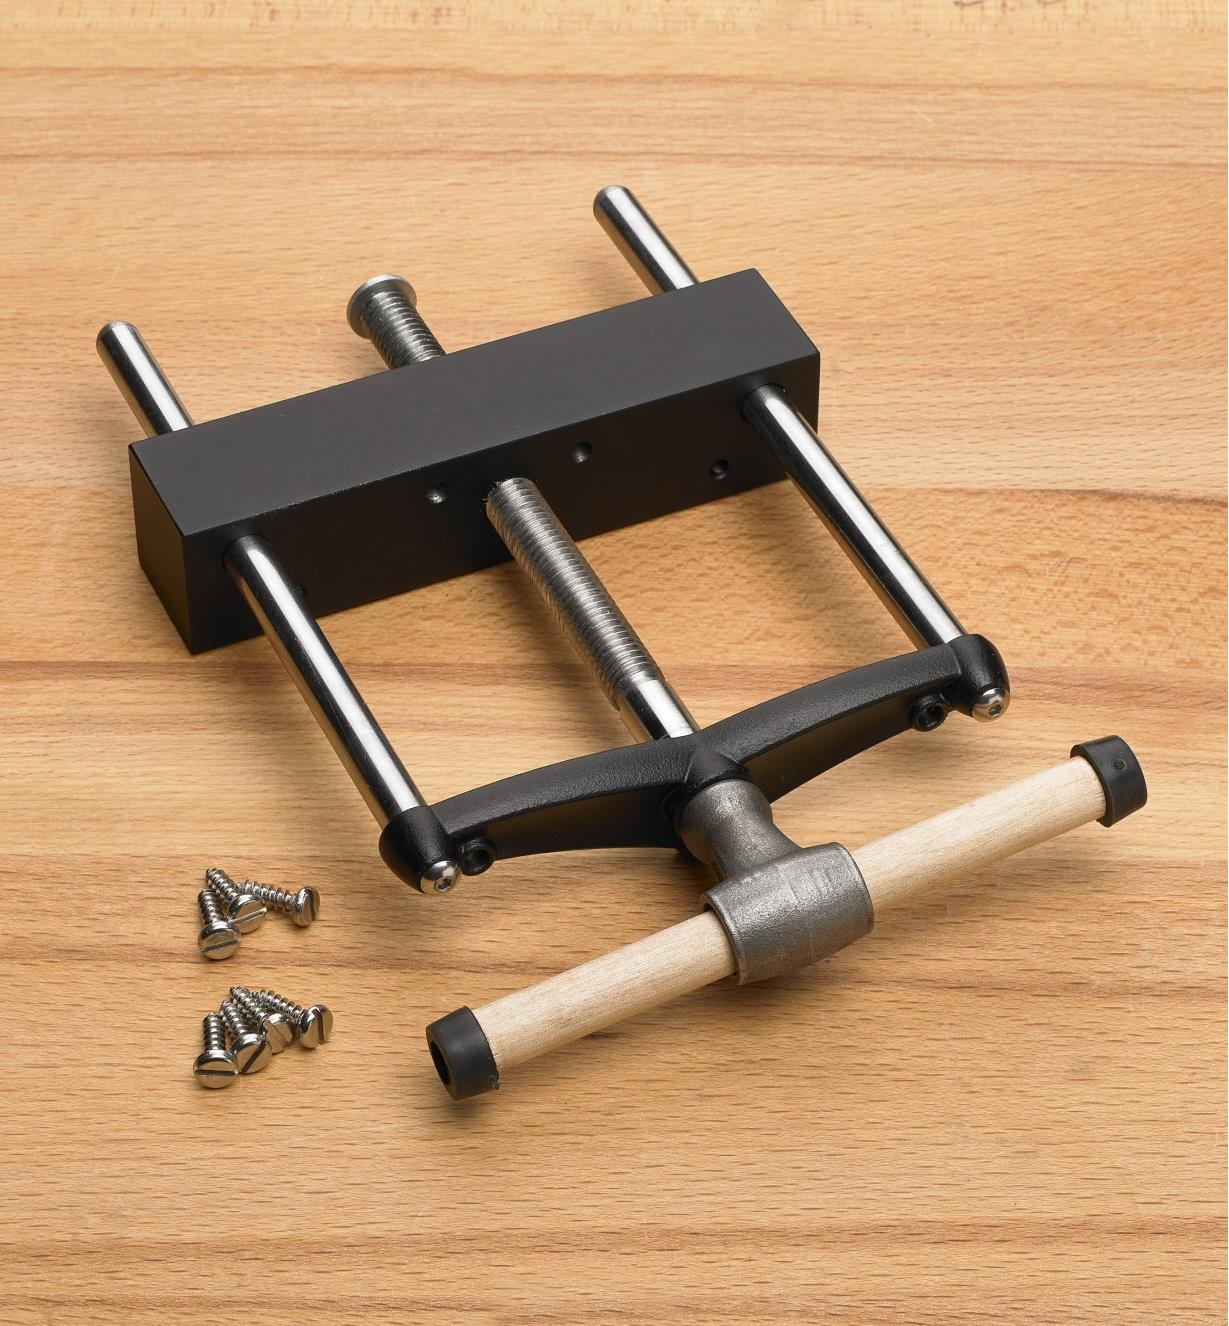 05P8601 - Veritas Miniature Bench Vise